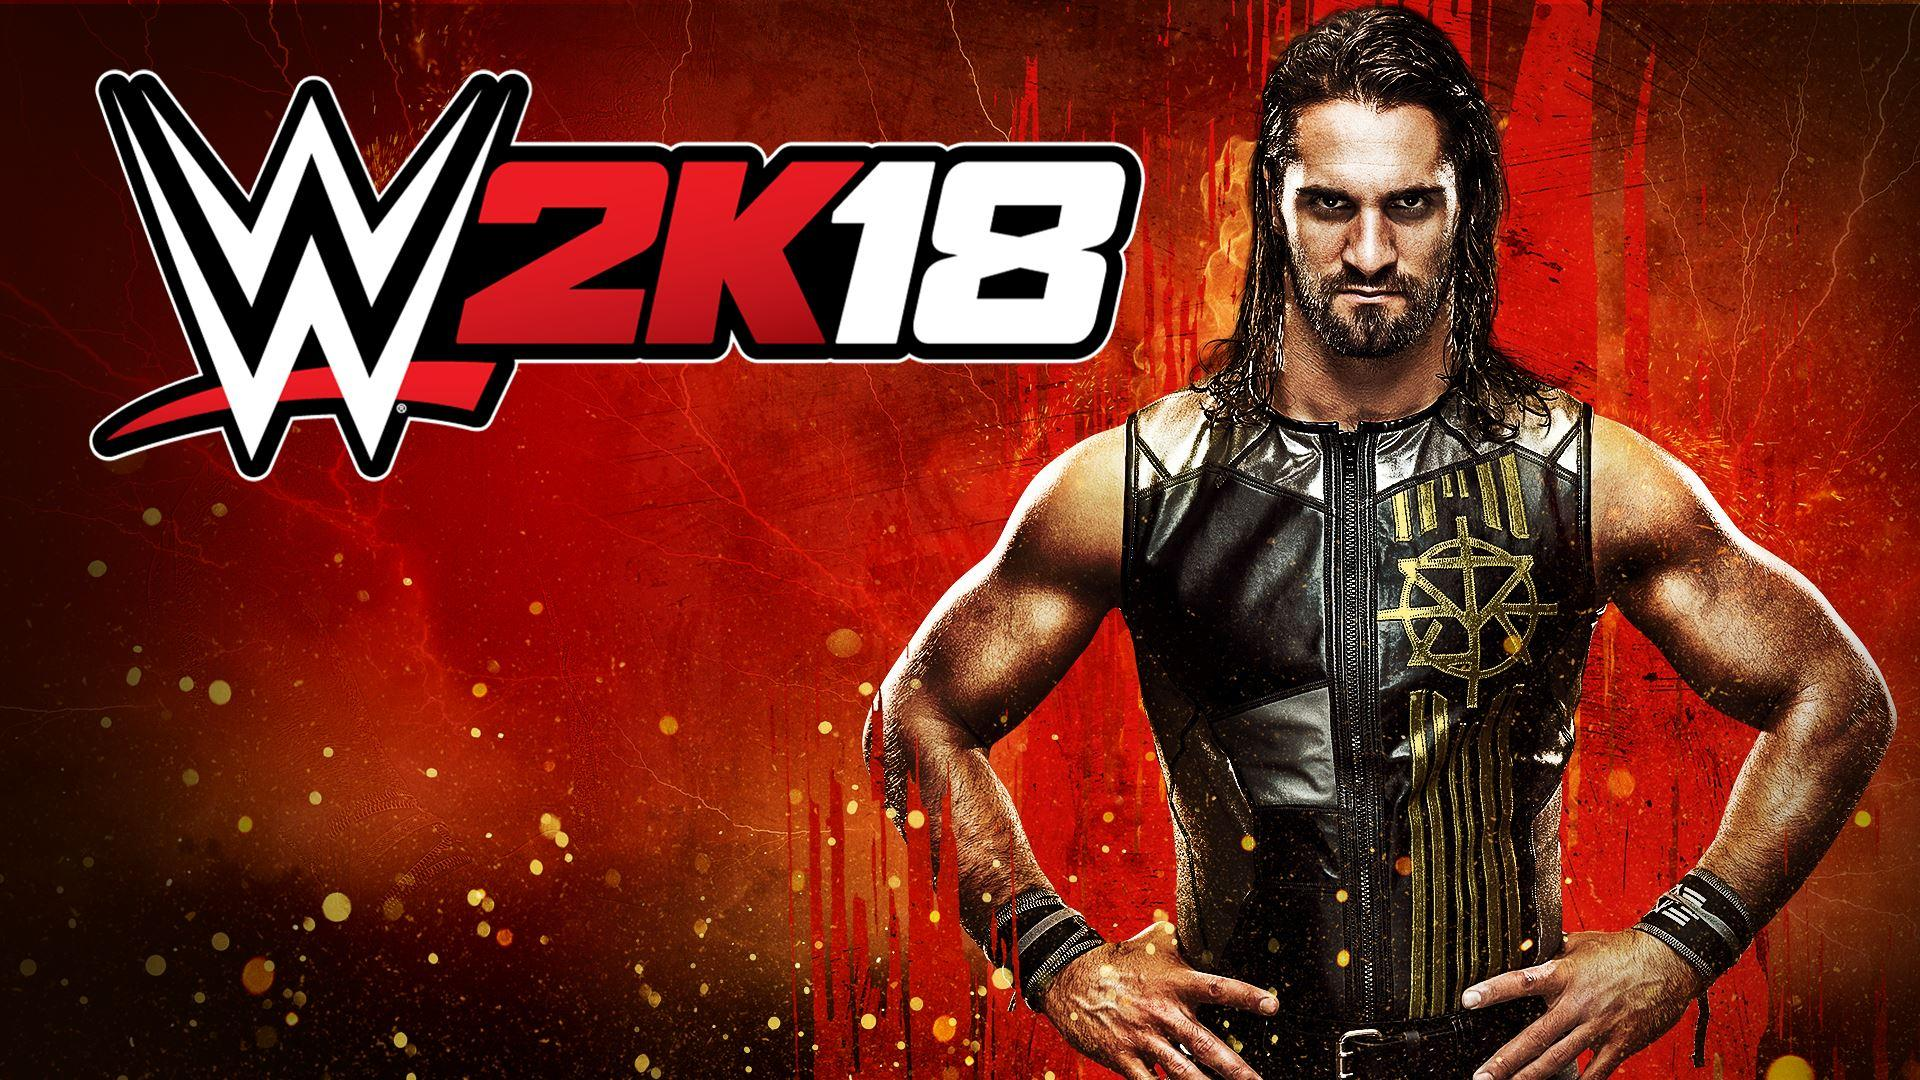 wwe 2k18 wallpapers & artworks - images gallery